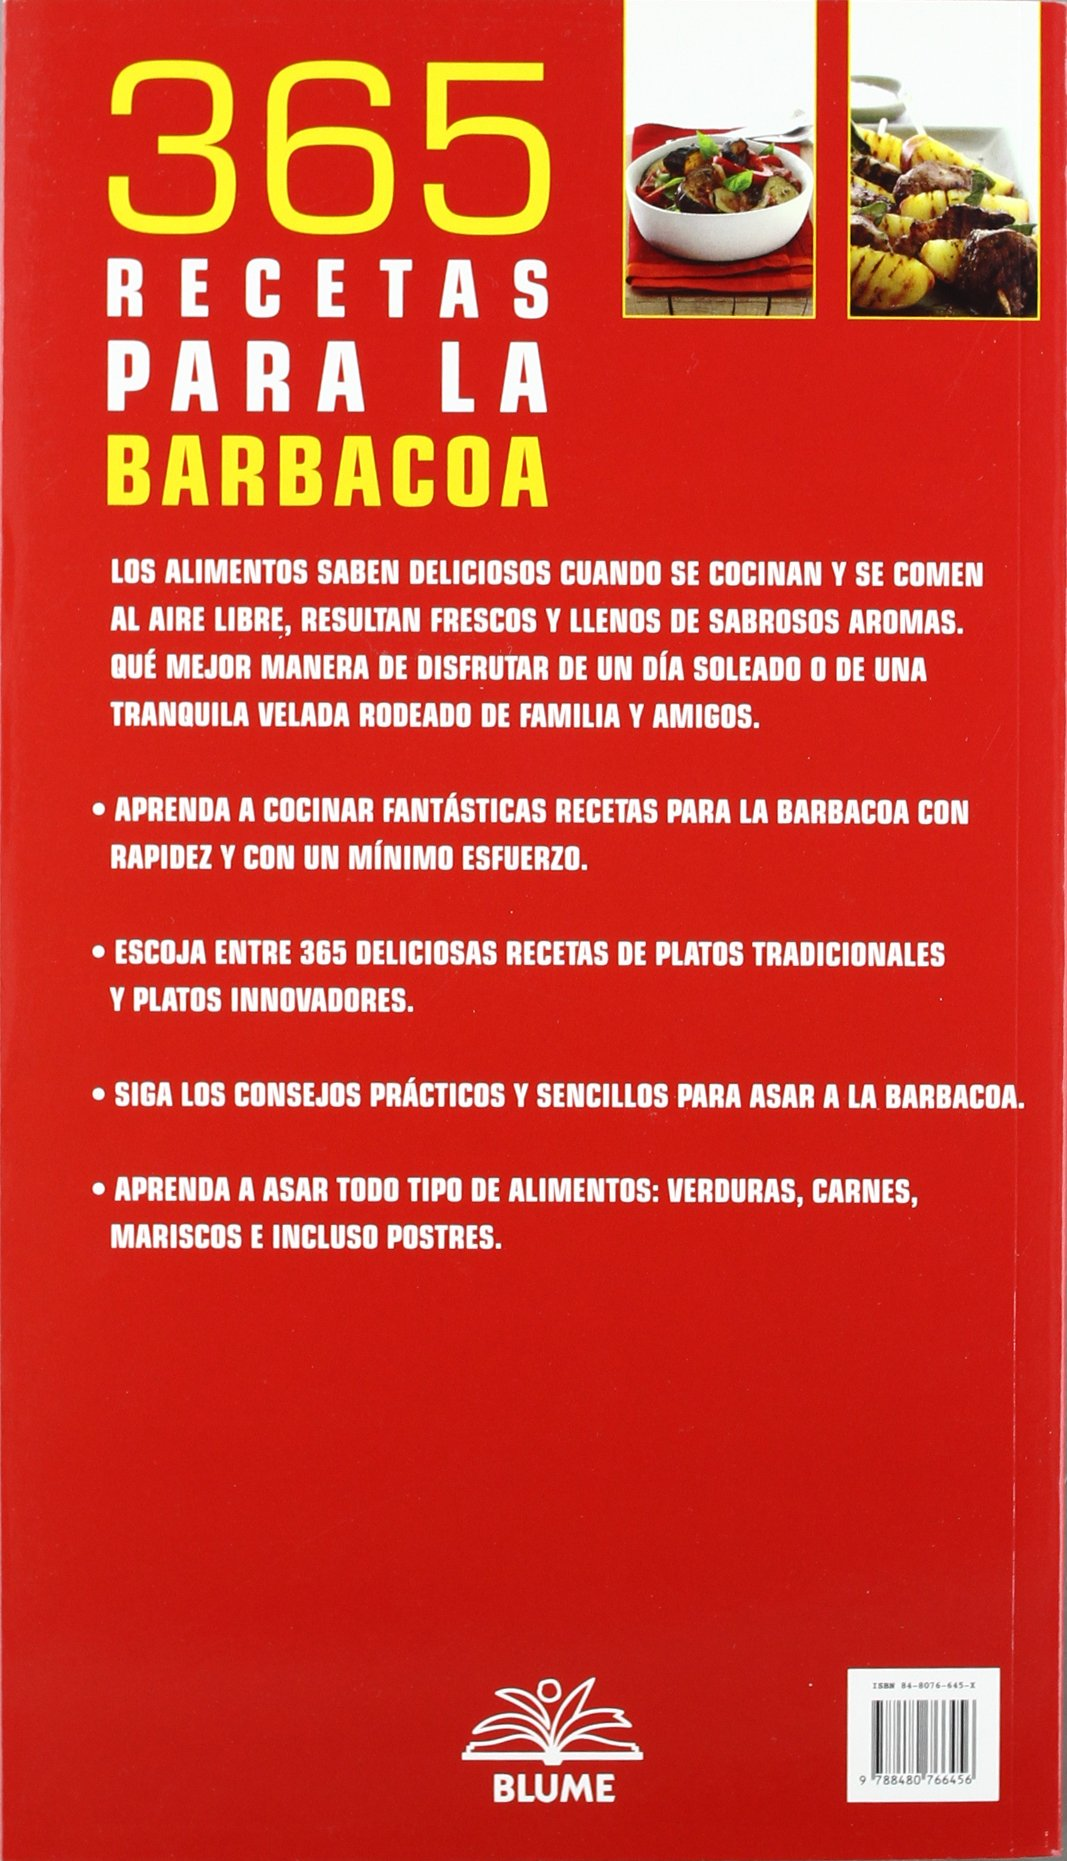 365 Recetas para la Barbacoa: Hilaire Walden: 9788480766456: Amazon.com: Books